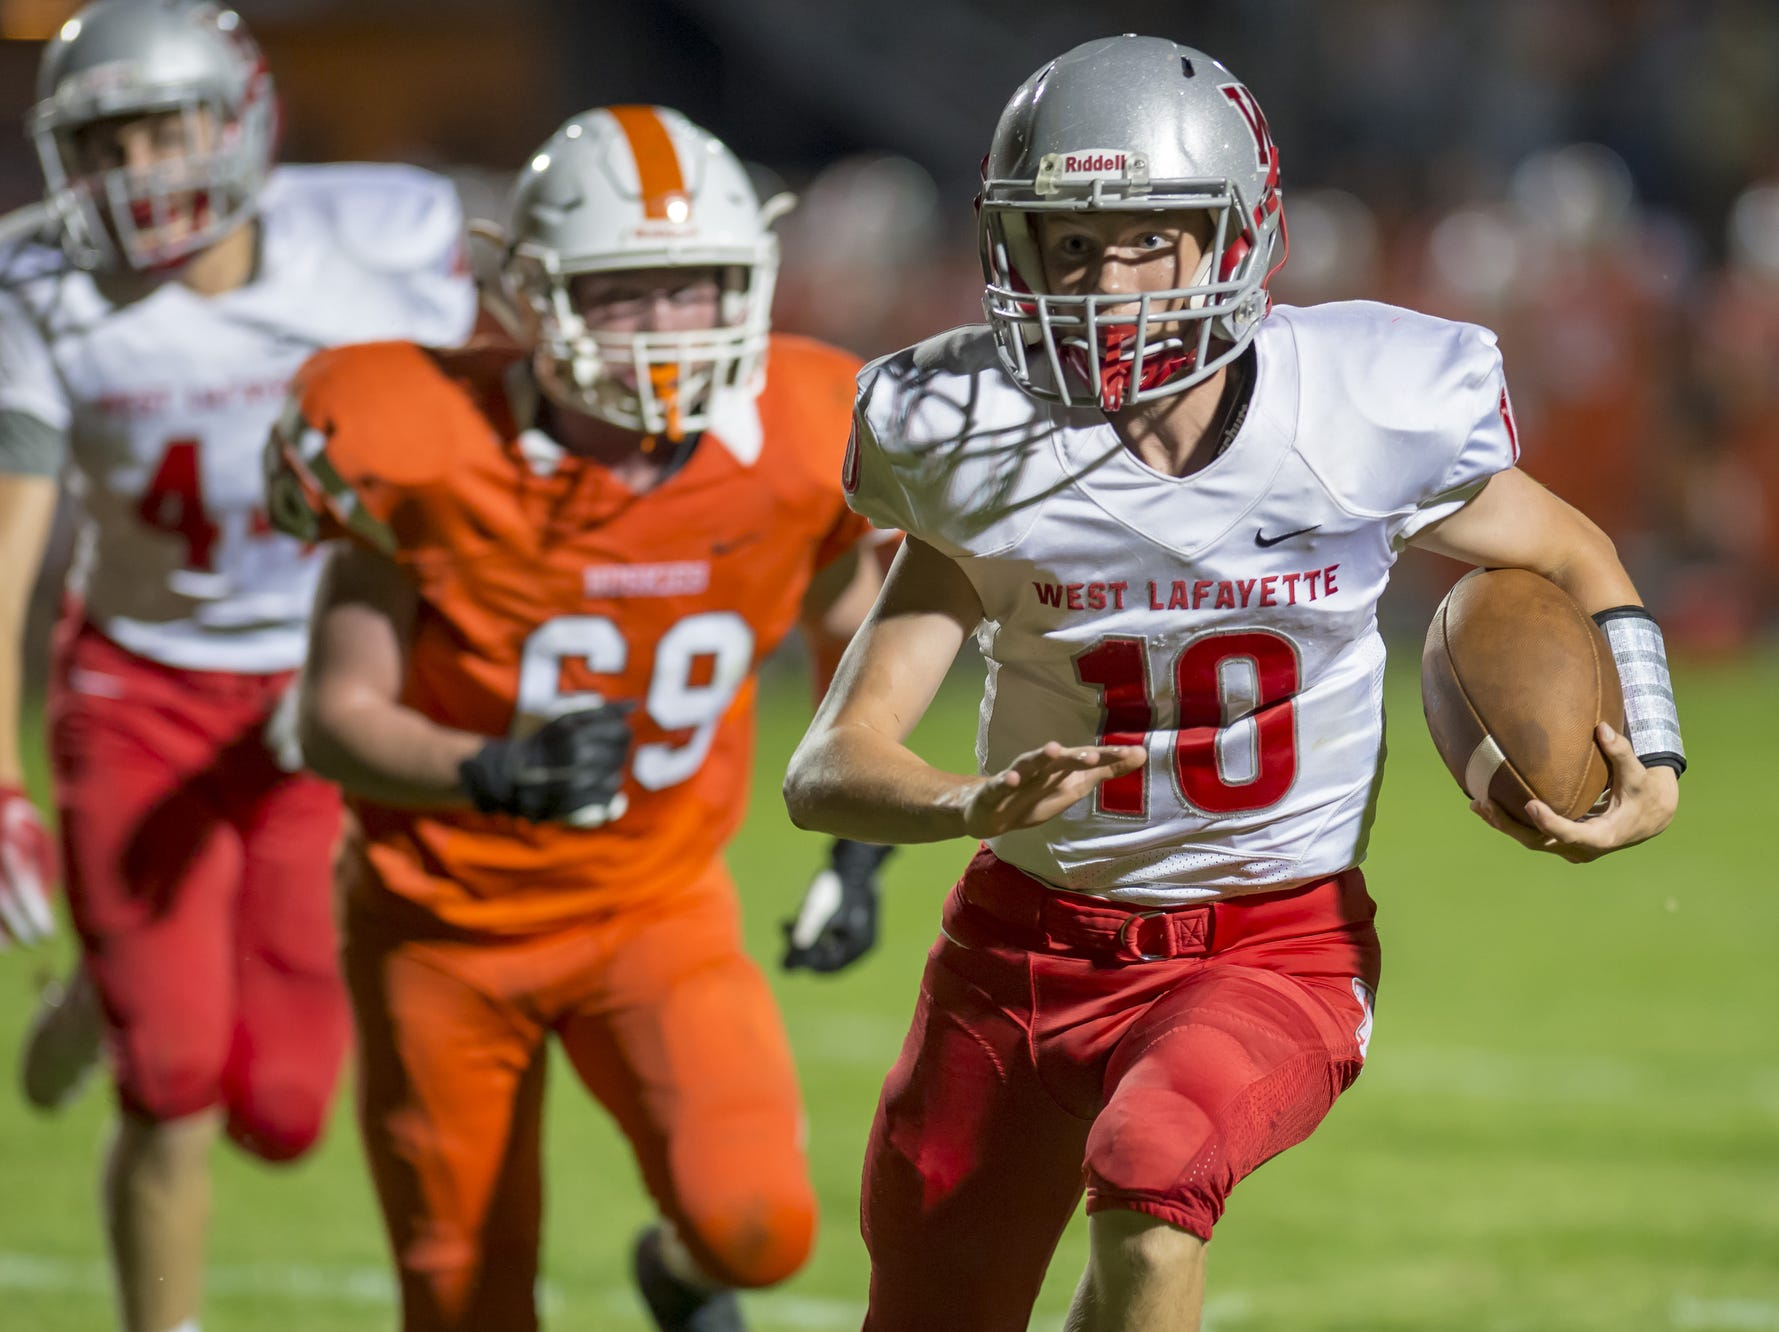 Action from West Lafayette at Hamilton Heights - The Red Devils won 76-0 to advance to 3-0 on the season.